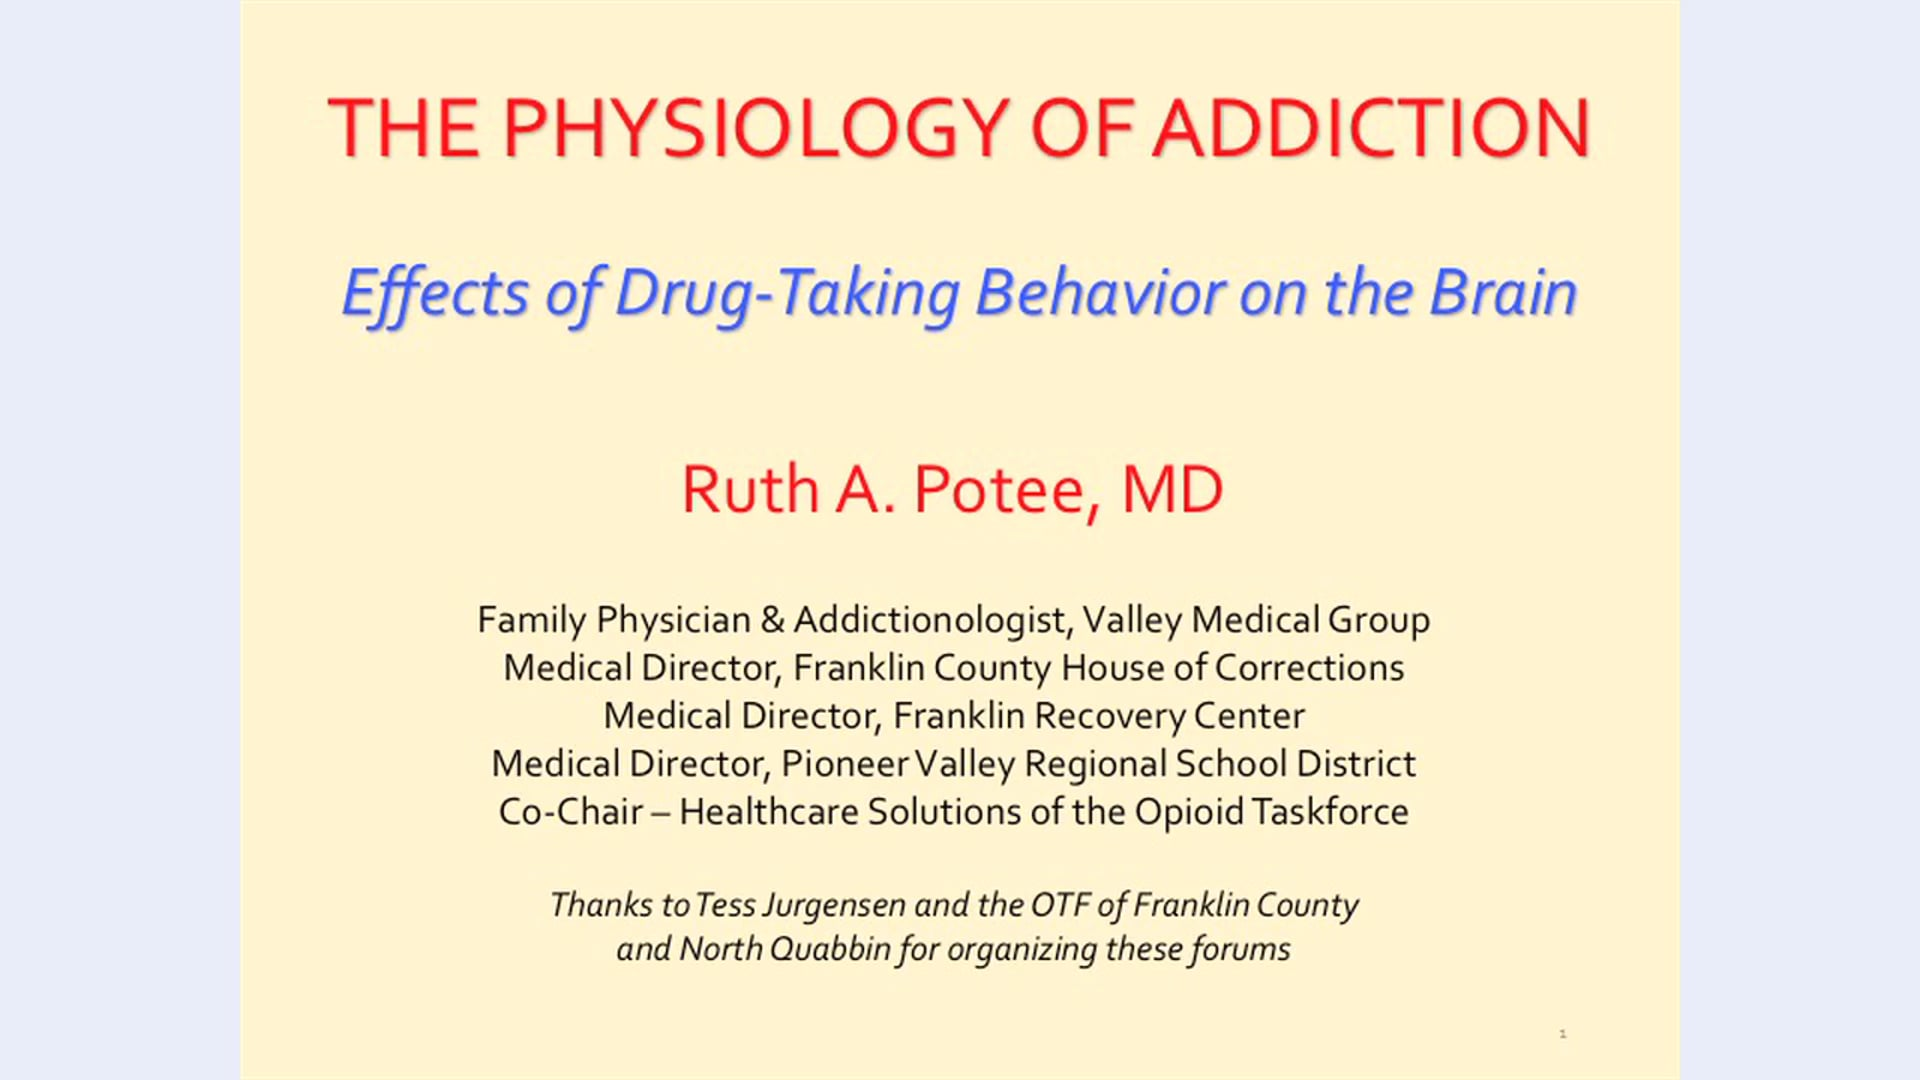 Dr Ruth Potee - The Physiology of Addiction